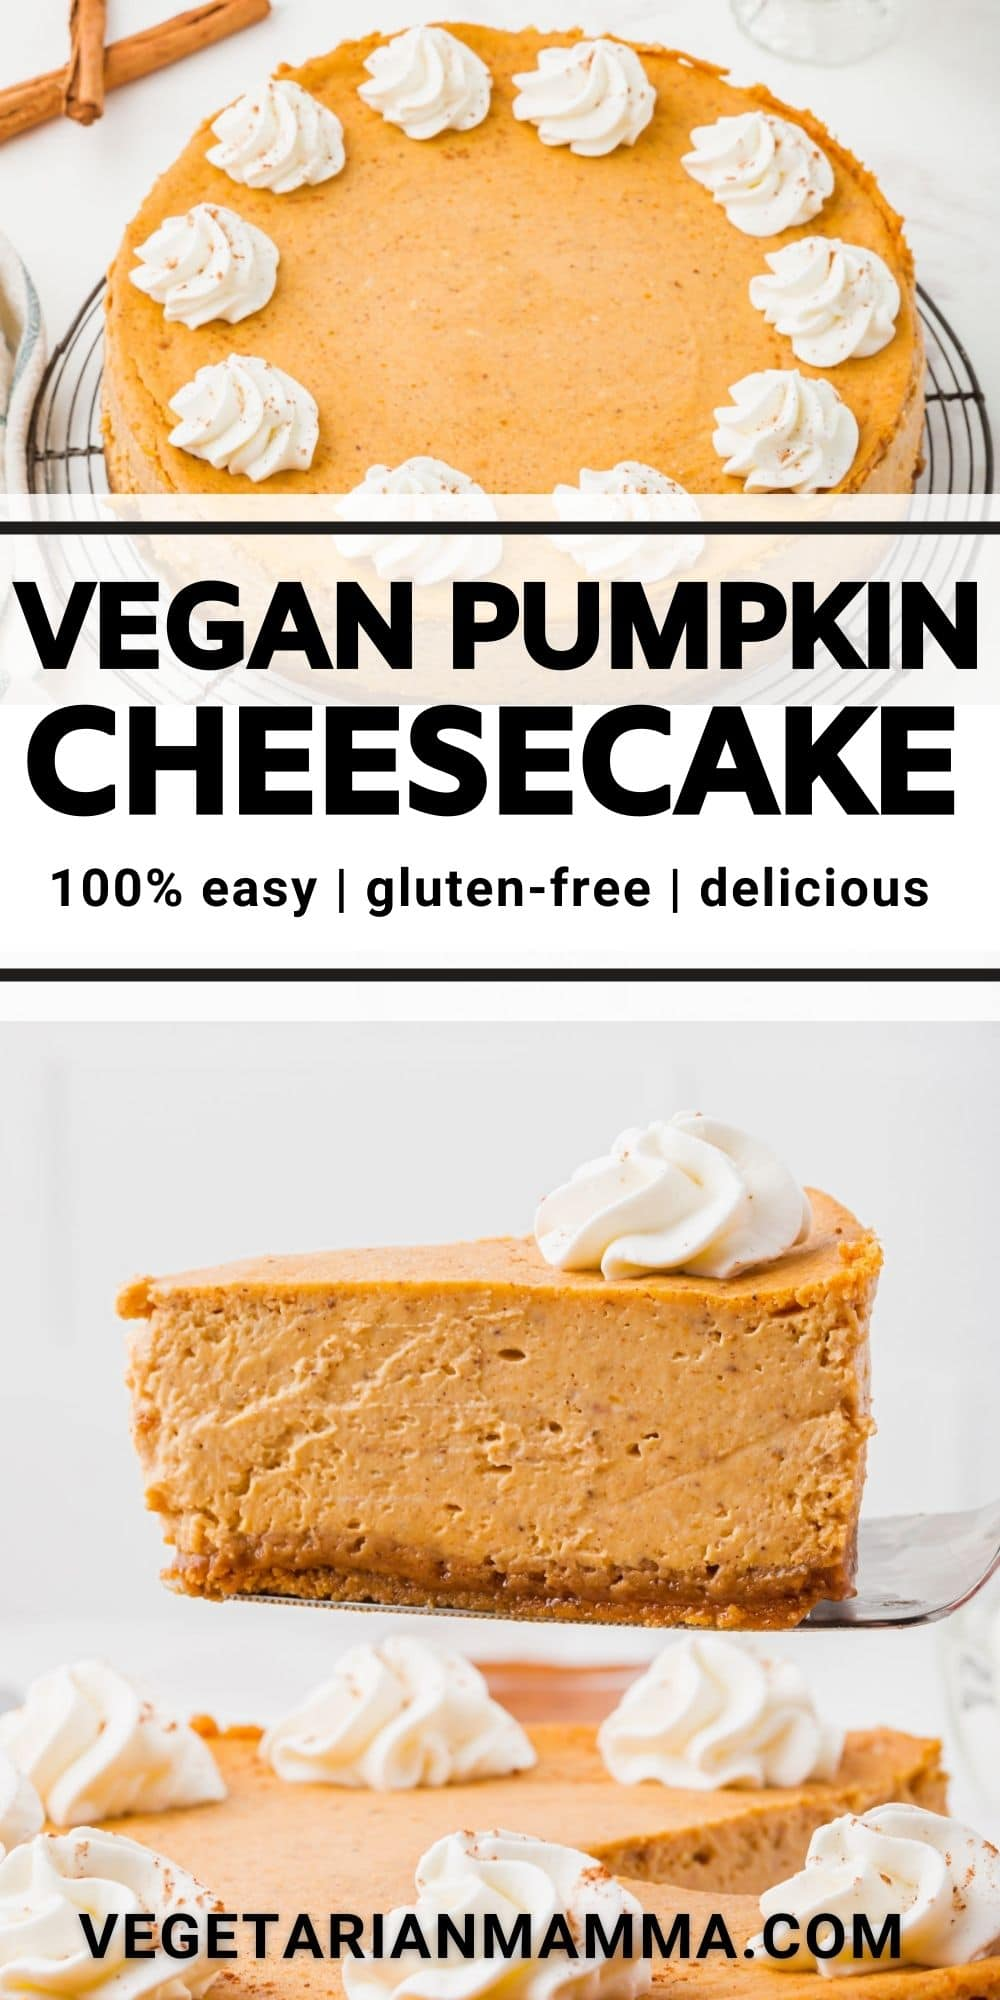 Vegan Pumpkin Cheesecake is luscious, creamy, and so easy! Make this amazing vegan dessert for holiday dinners packed with pumpkin spice flavor.